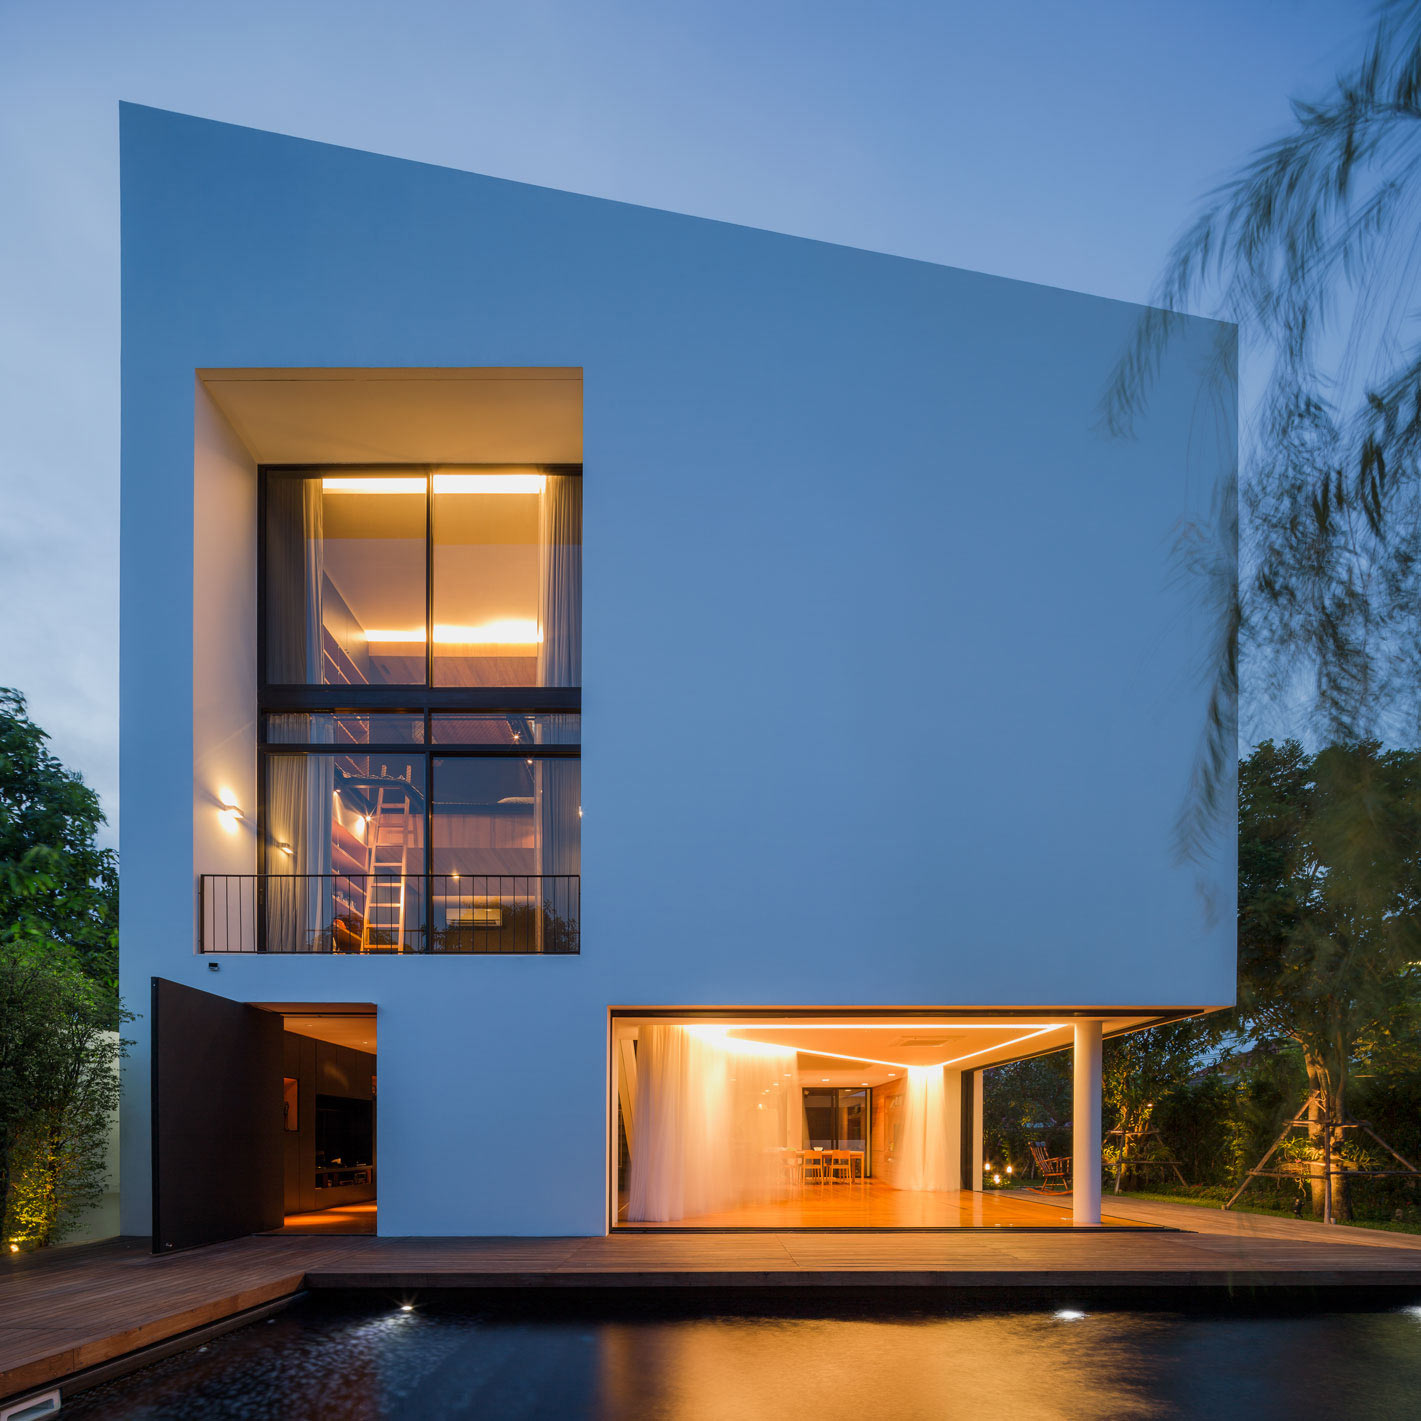 Architectural Design Of Residential Building Modern White House With Integrated Angles And Corners Design Milk